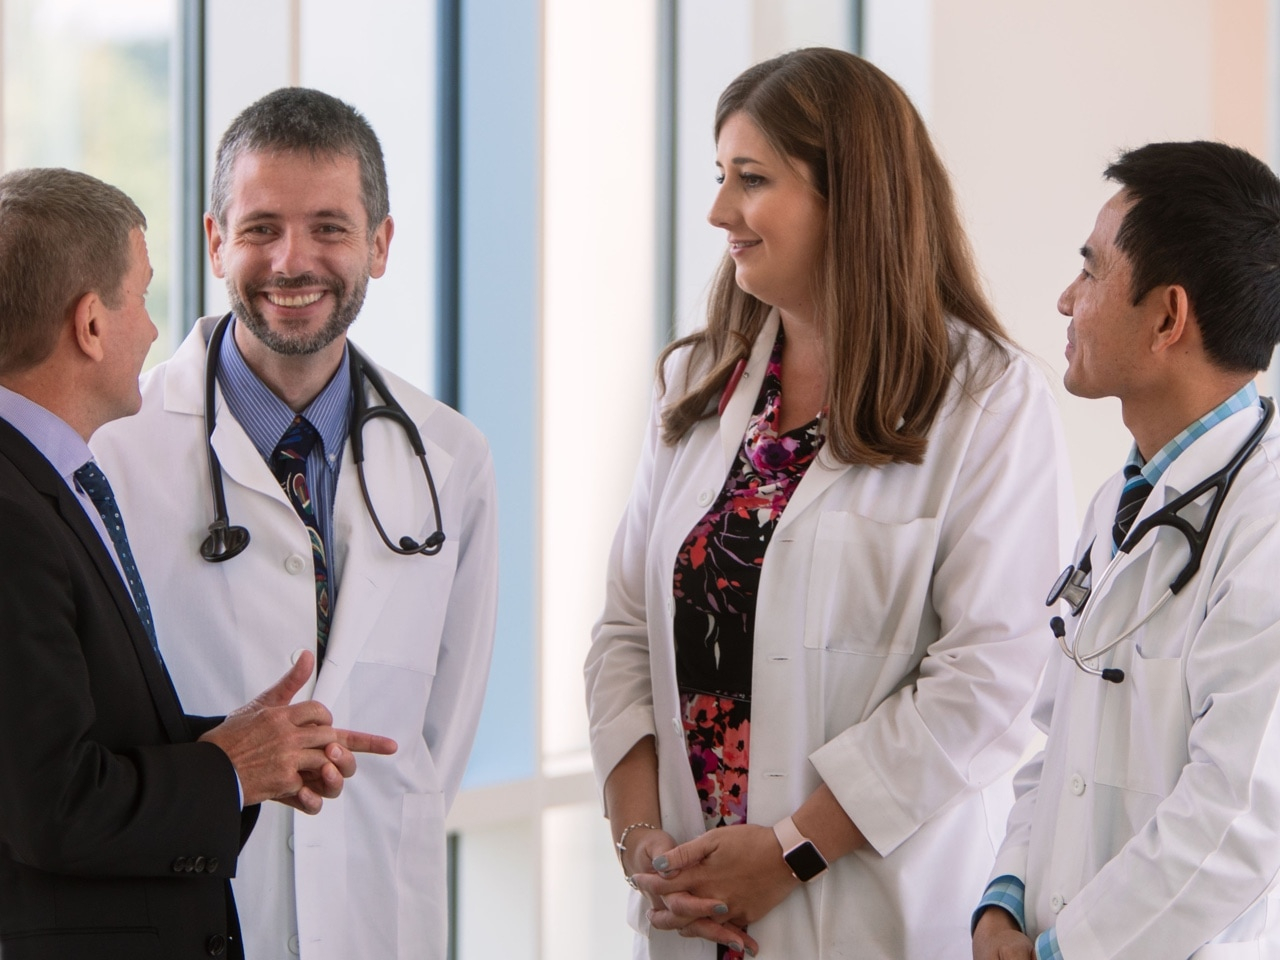 pics How to Get an Appointment at Mayo Clinic